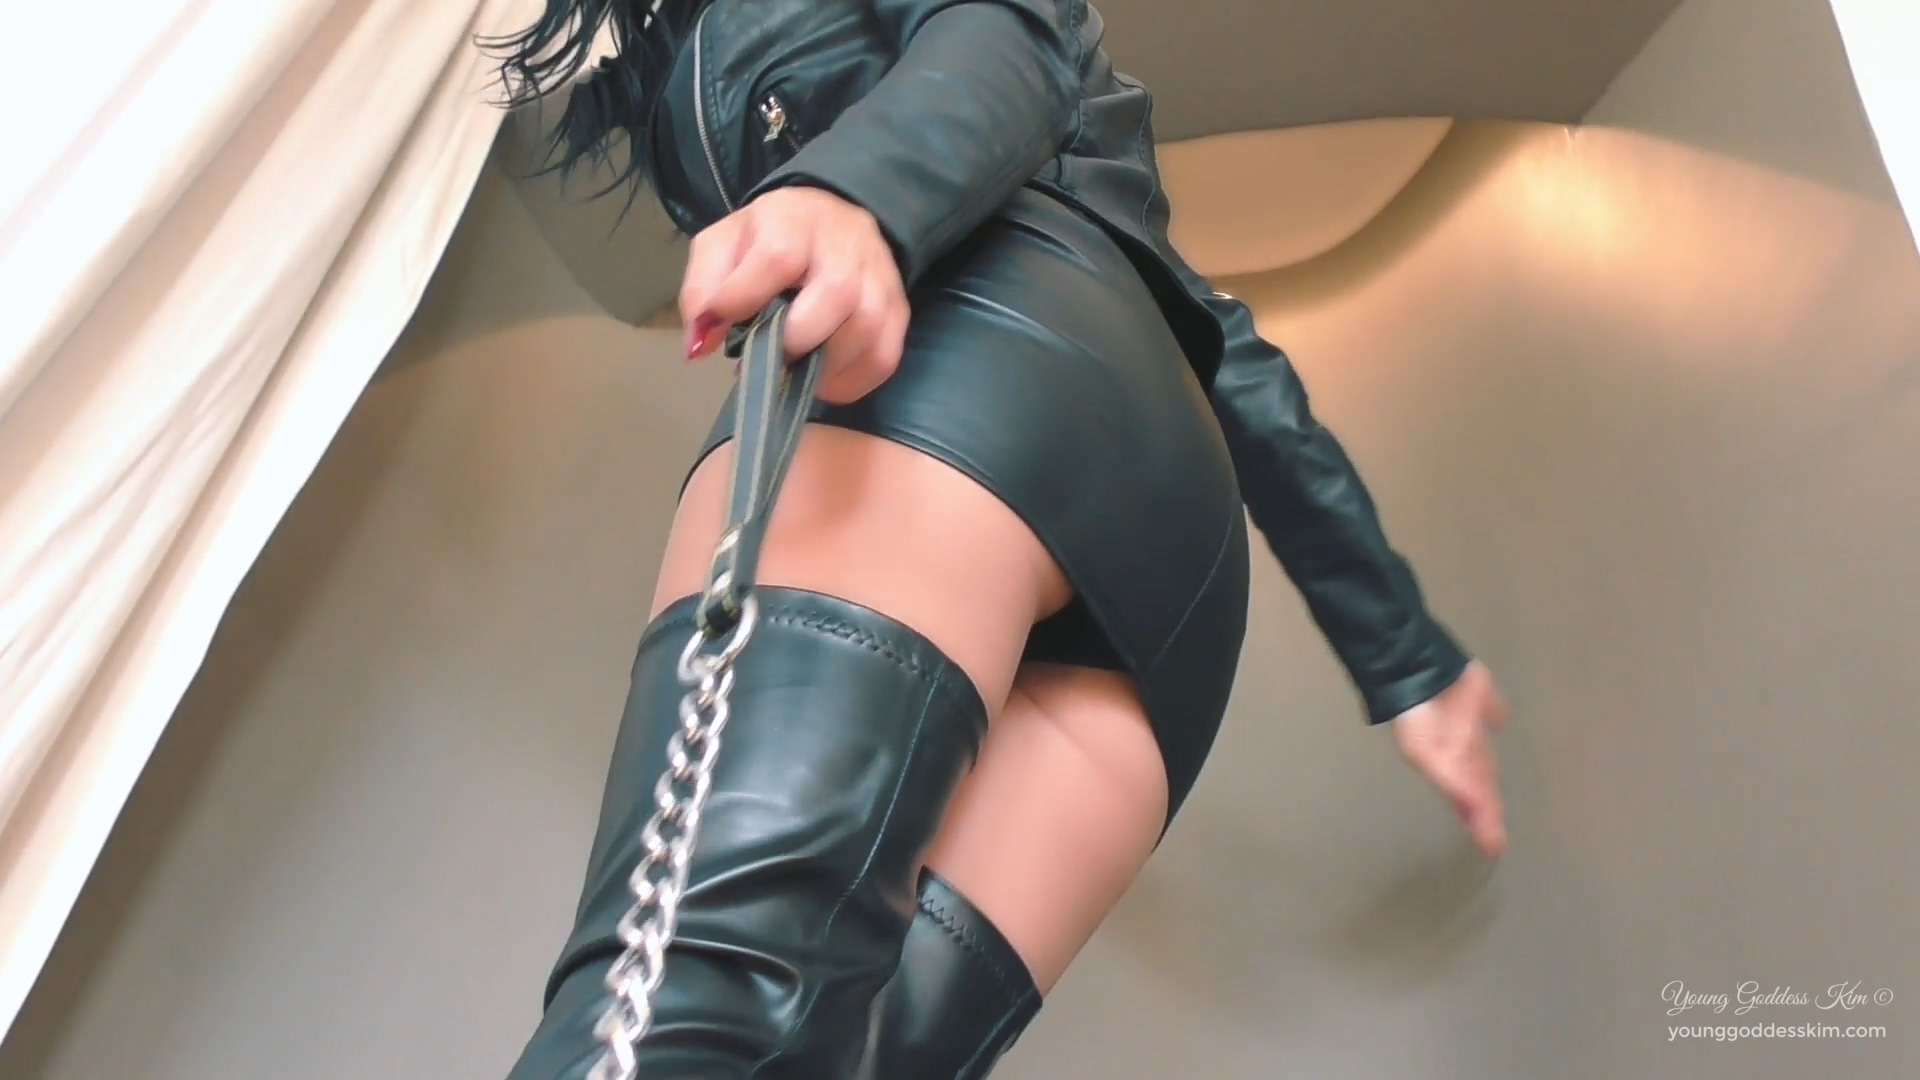 942901722_Leather_and_lust.mp4_20190330_124622.031_123_106lo.jpg